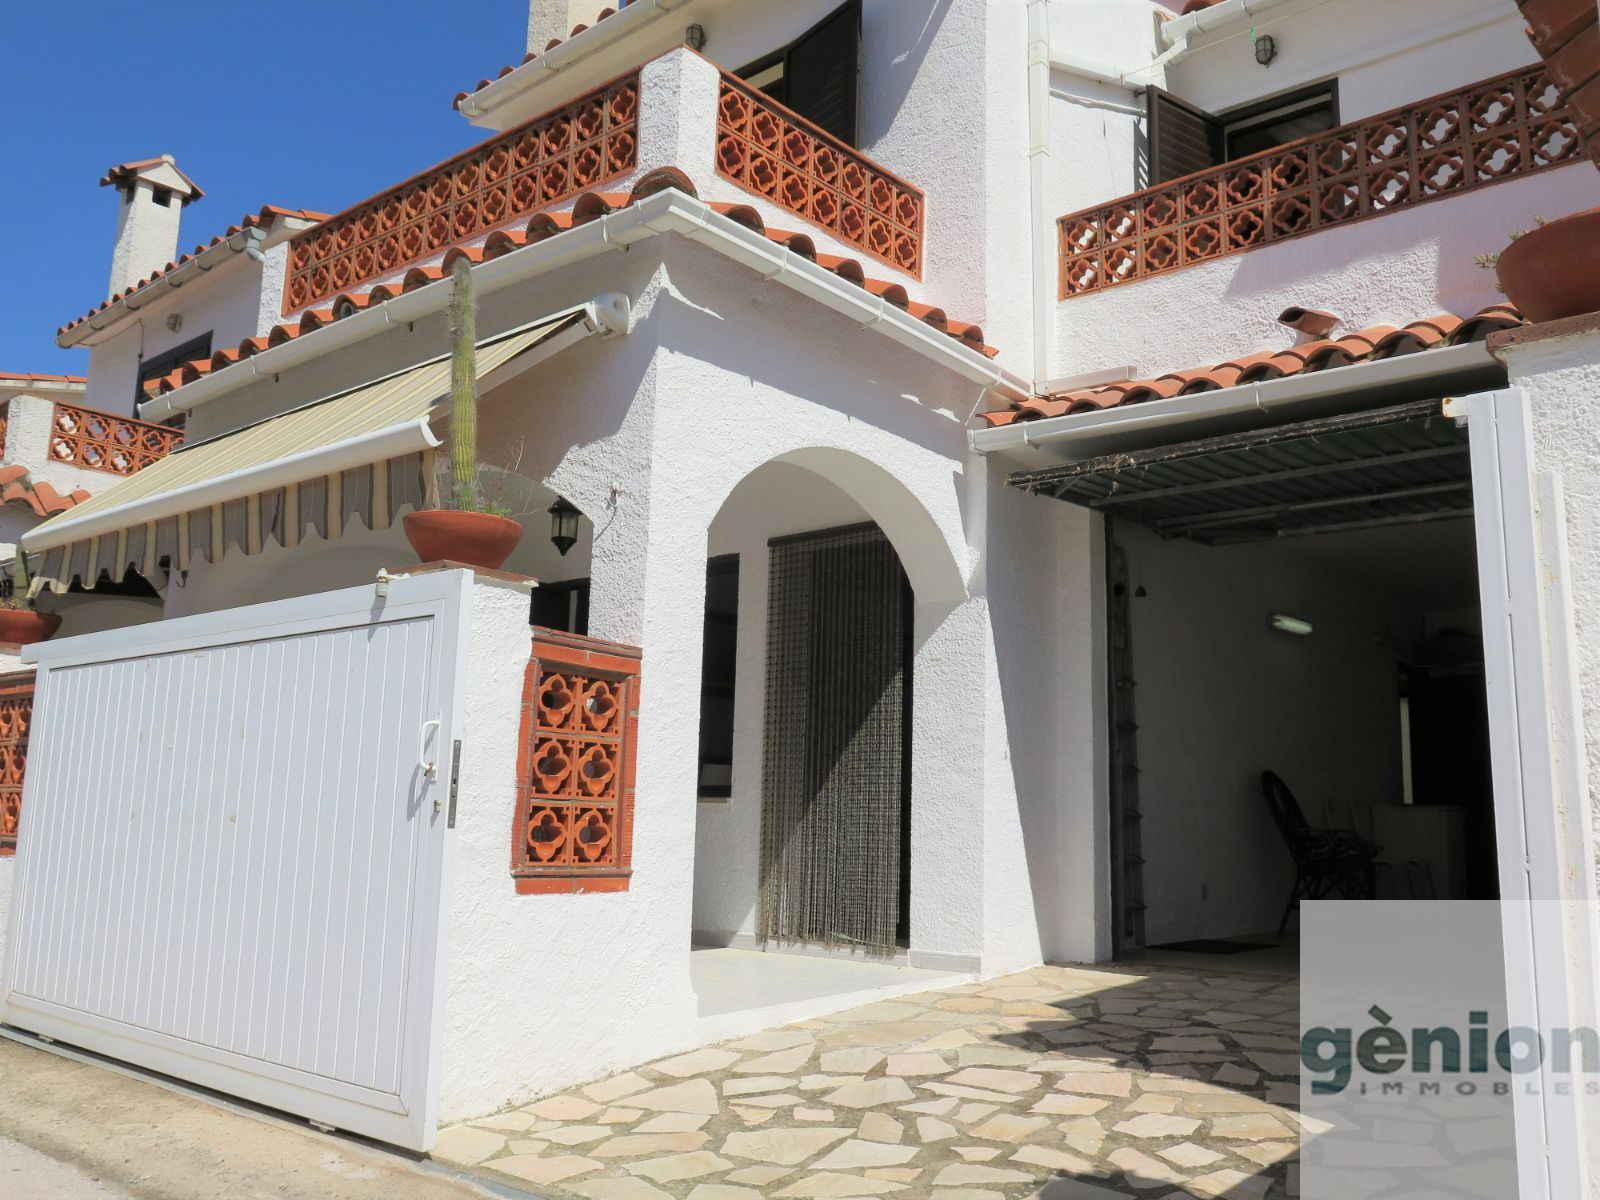 REFURBISHED 4-BEDROOM HOUSE IN L'ESCALA, JUST A FEW METRES FROM RIELLS BEACH